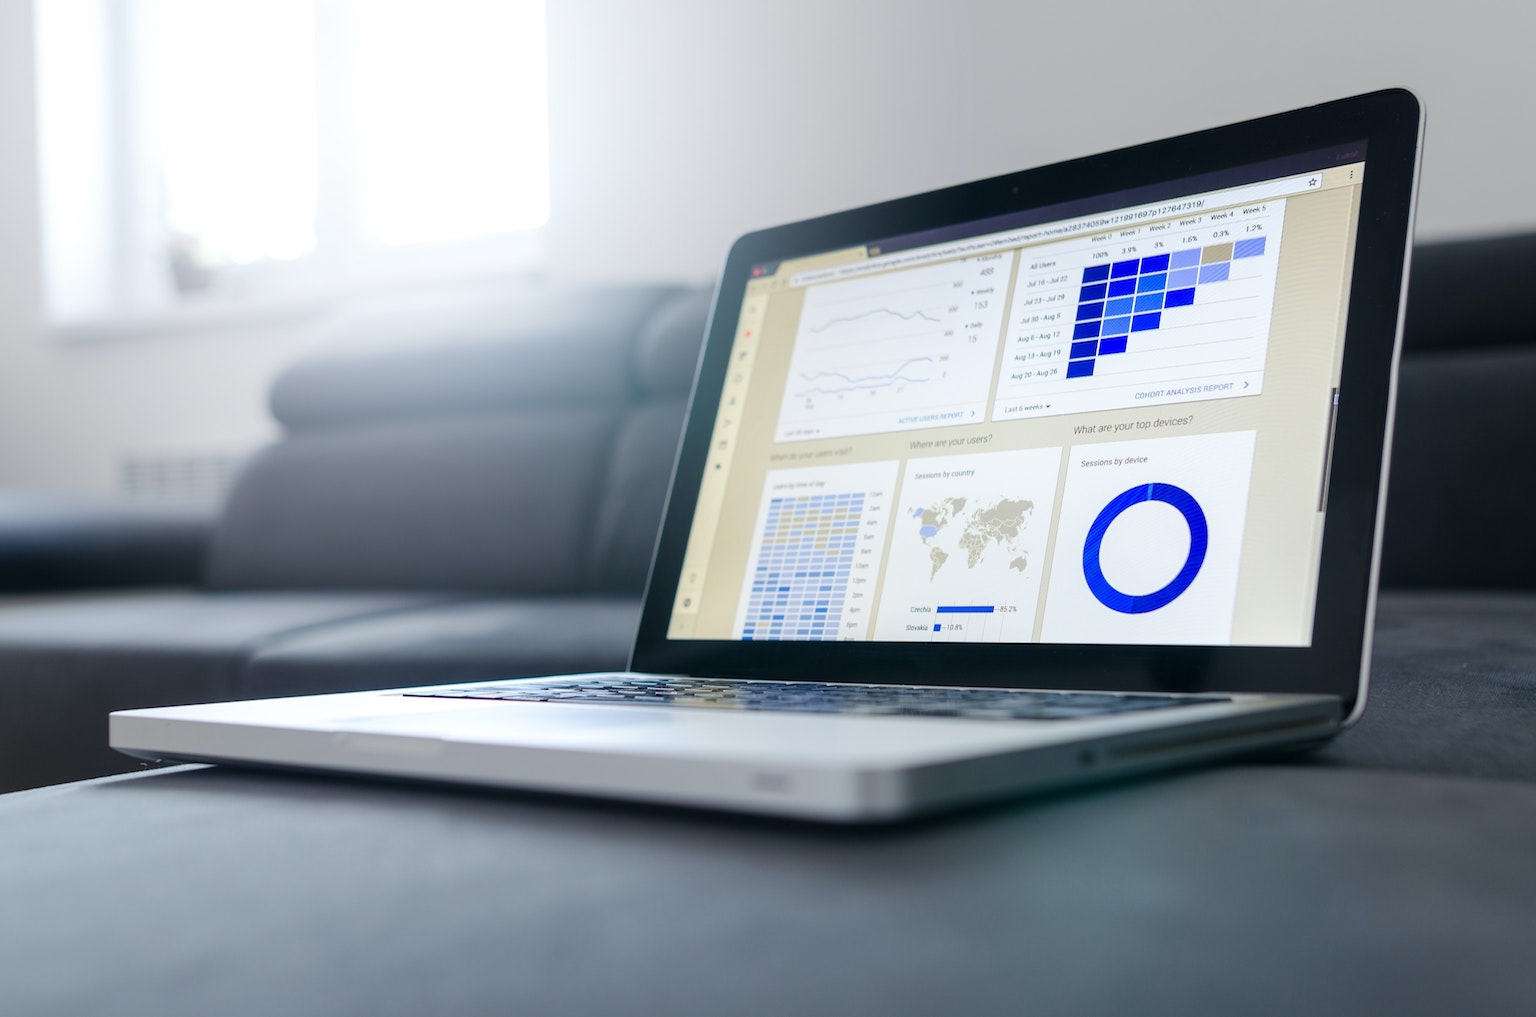 7 tips for presenting data effectively